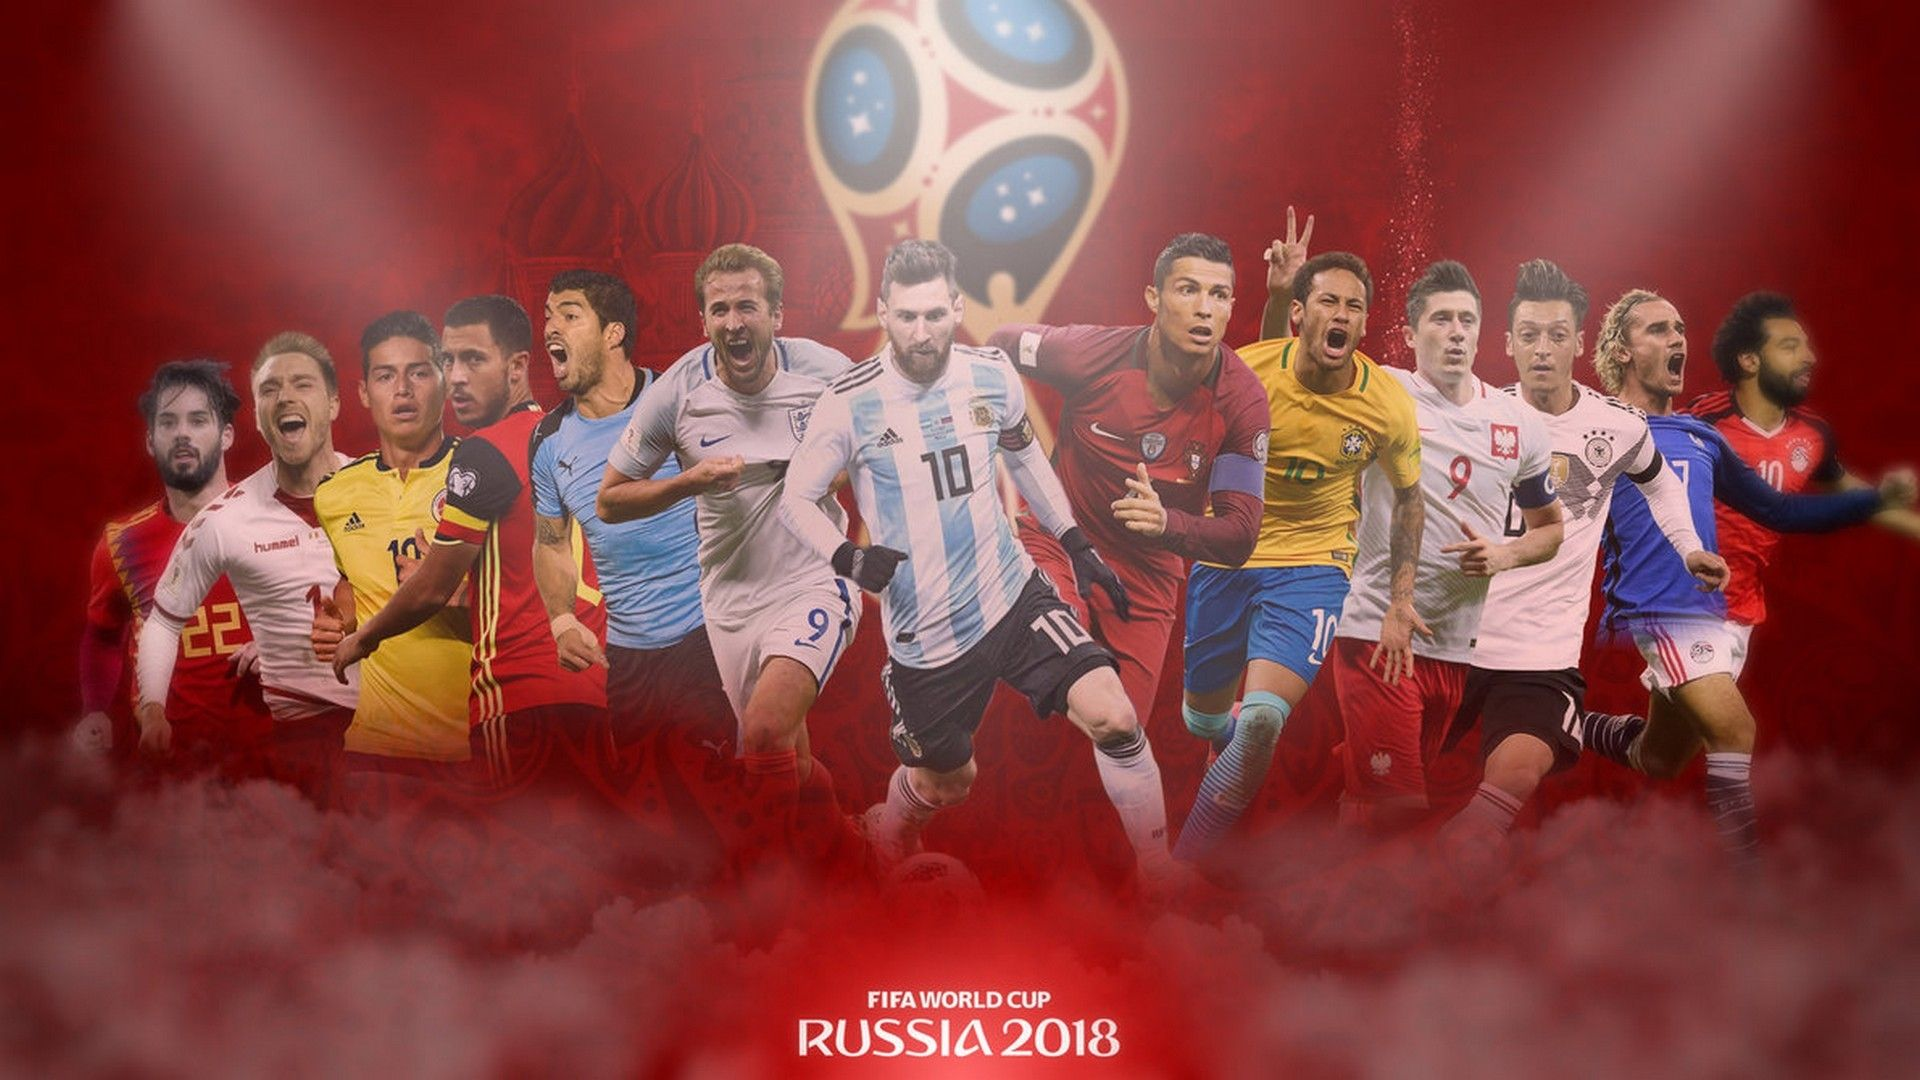 Wallpapers World Cup Russia Best Hd Wallpapers World Cup Russia World Cup World Cup 2018